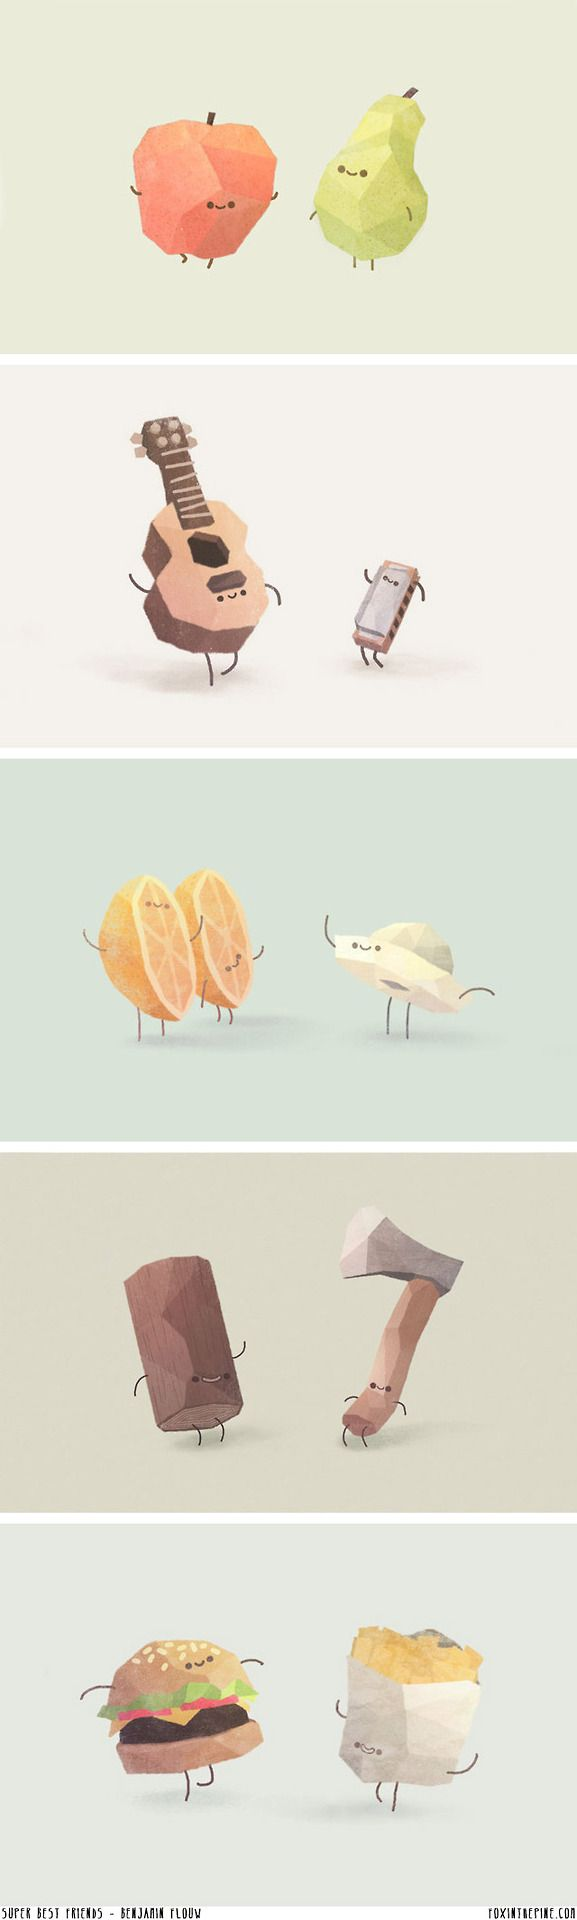 bella-illusione: Benjamin Flouw, a French designer, made these incredibly cute best friend posters.